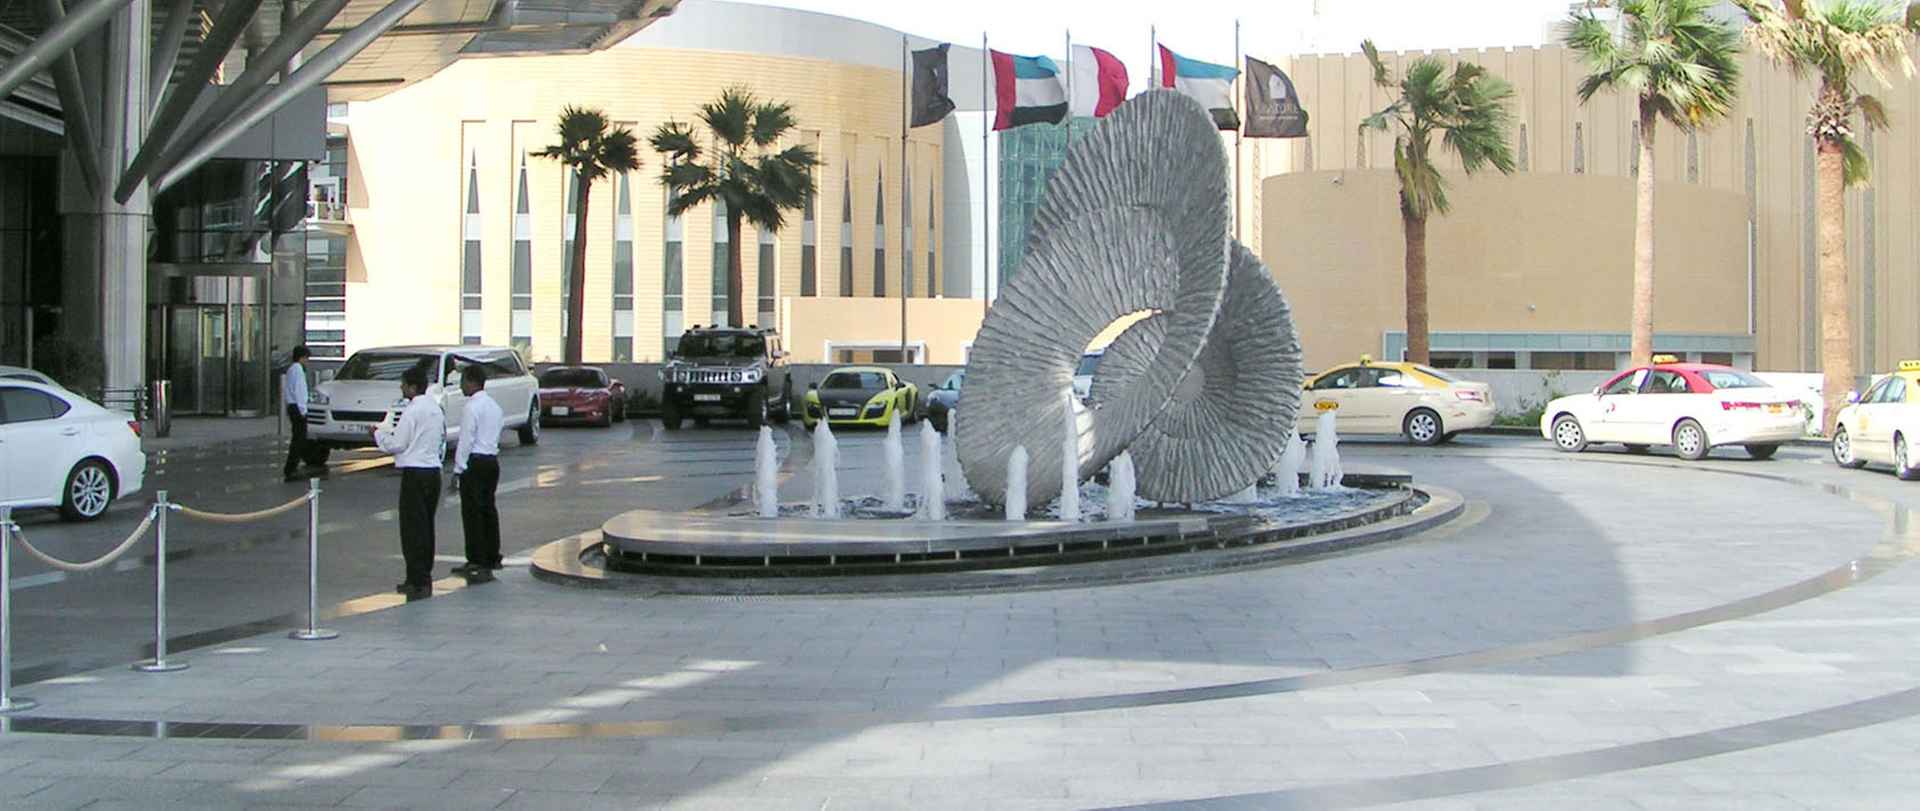 The first impression when you approach the hotel by The Address, Dubai